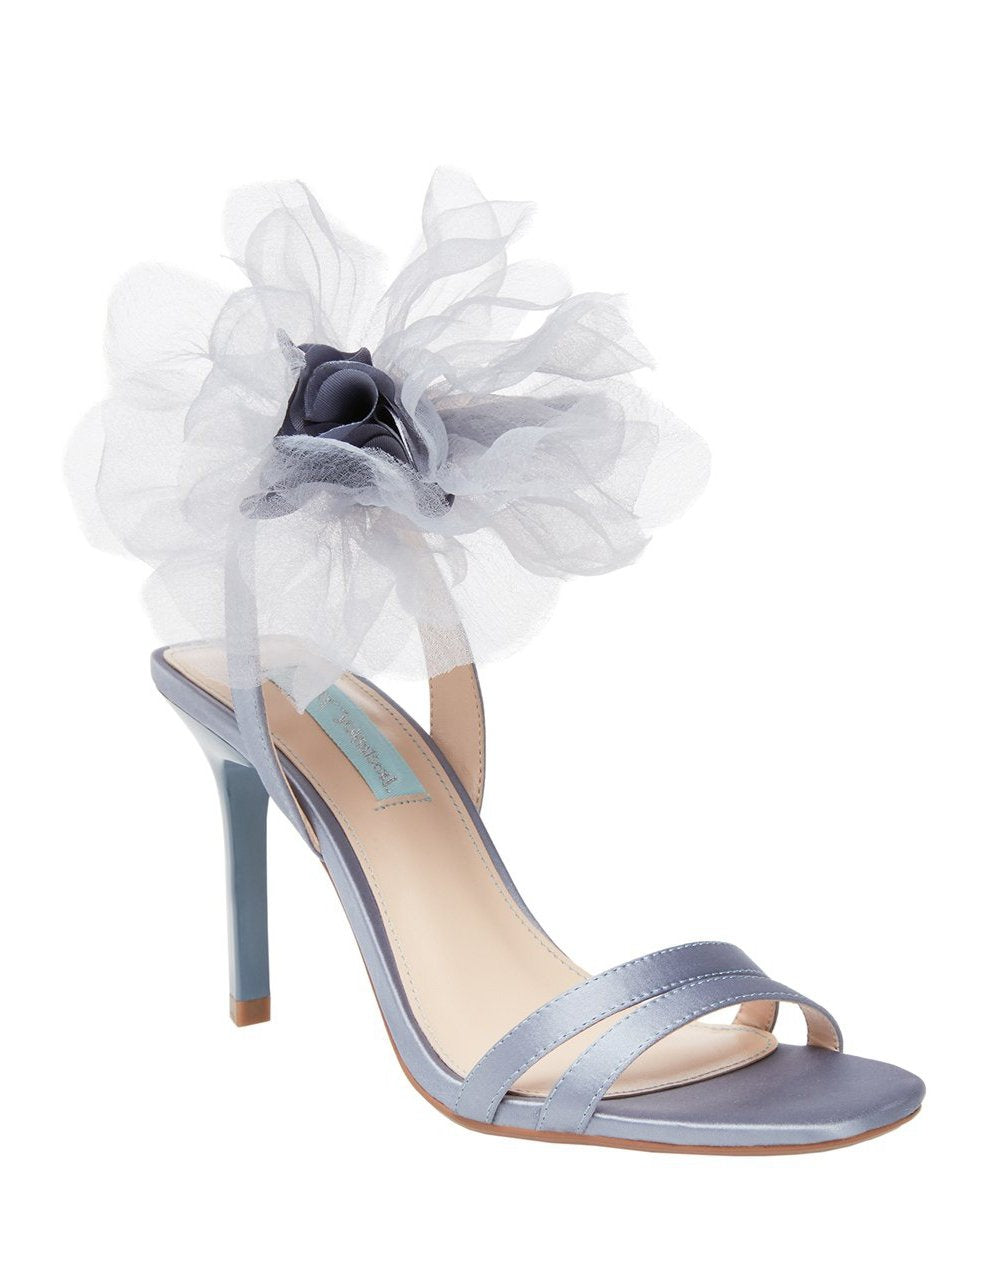 SB-YASMI BLUE - SHOES - Betsey Johnson